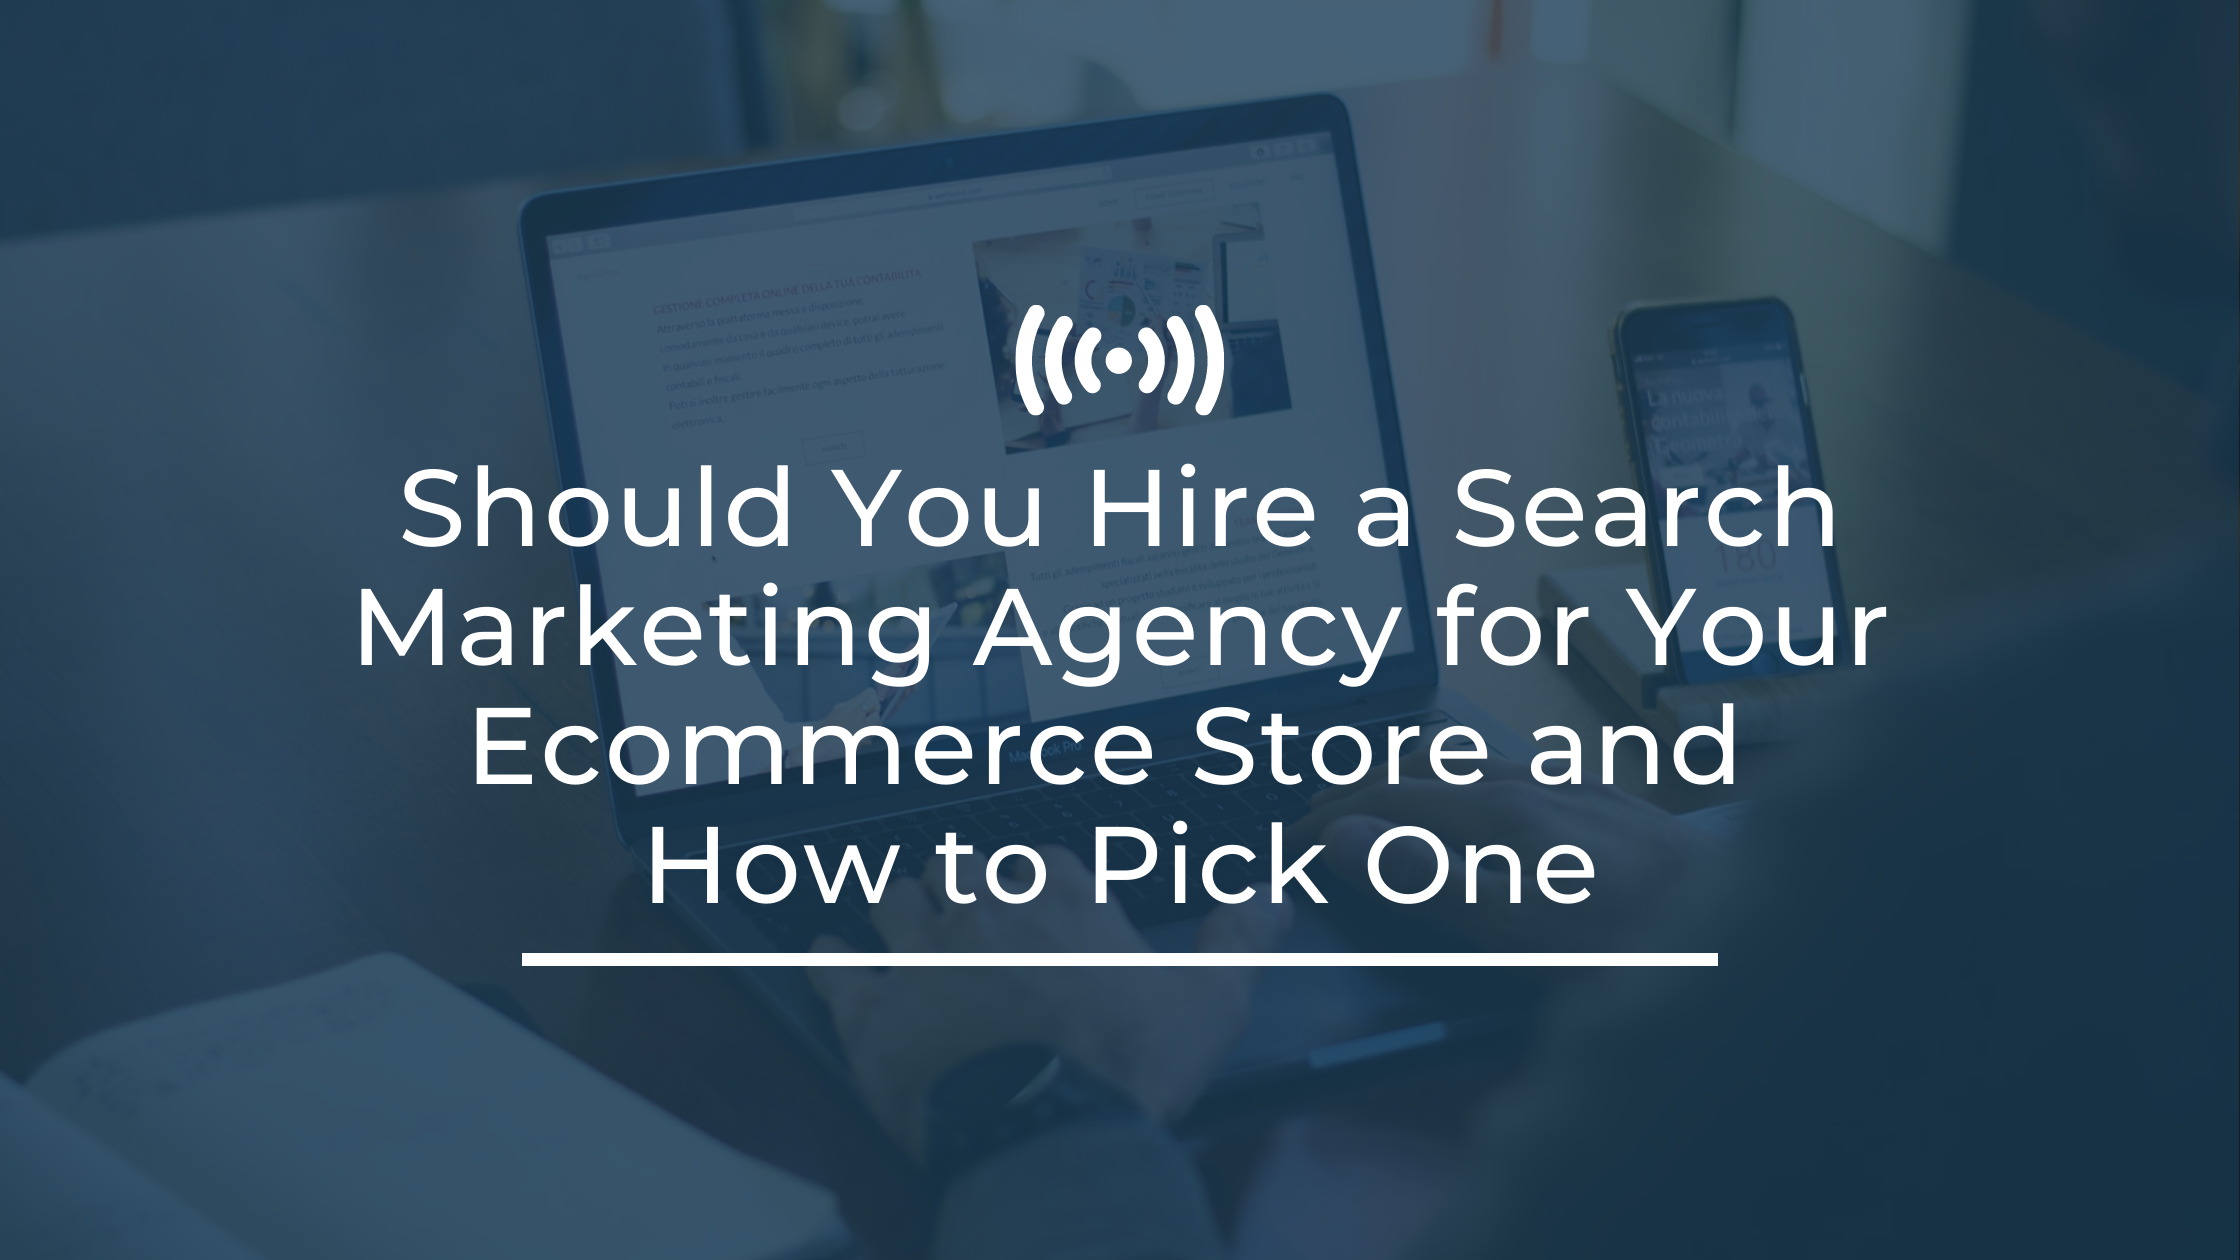 should-you-hire-search-marketing-agency